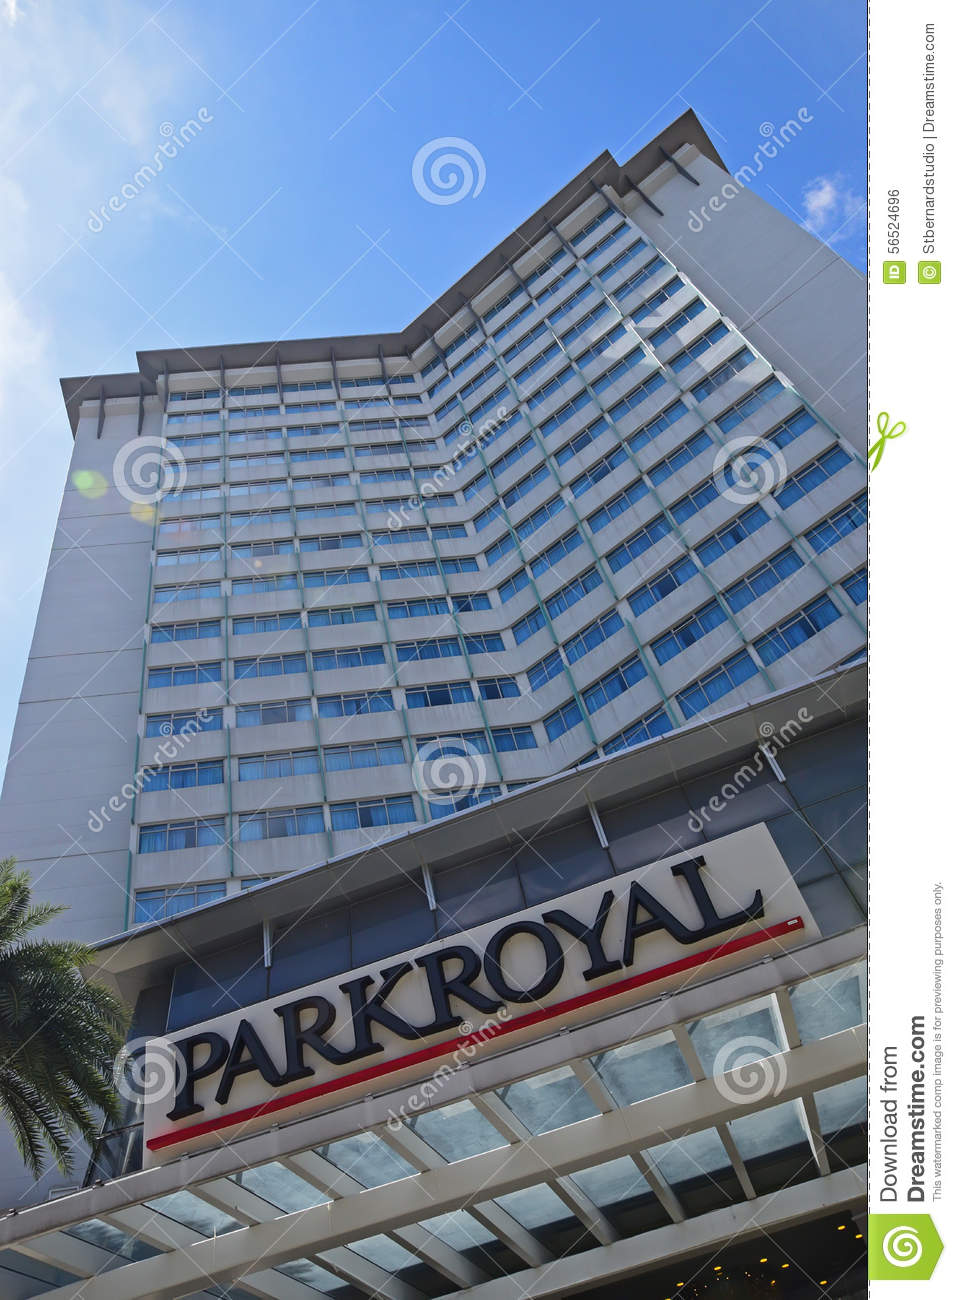 Parkroyal Hotel Building In Singapore At Kitchener Road Managed By ...